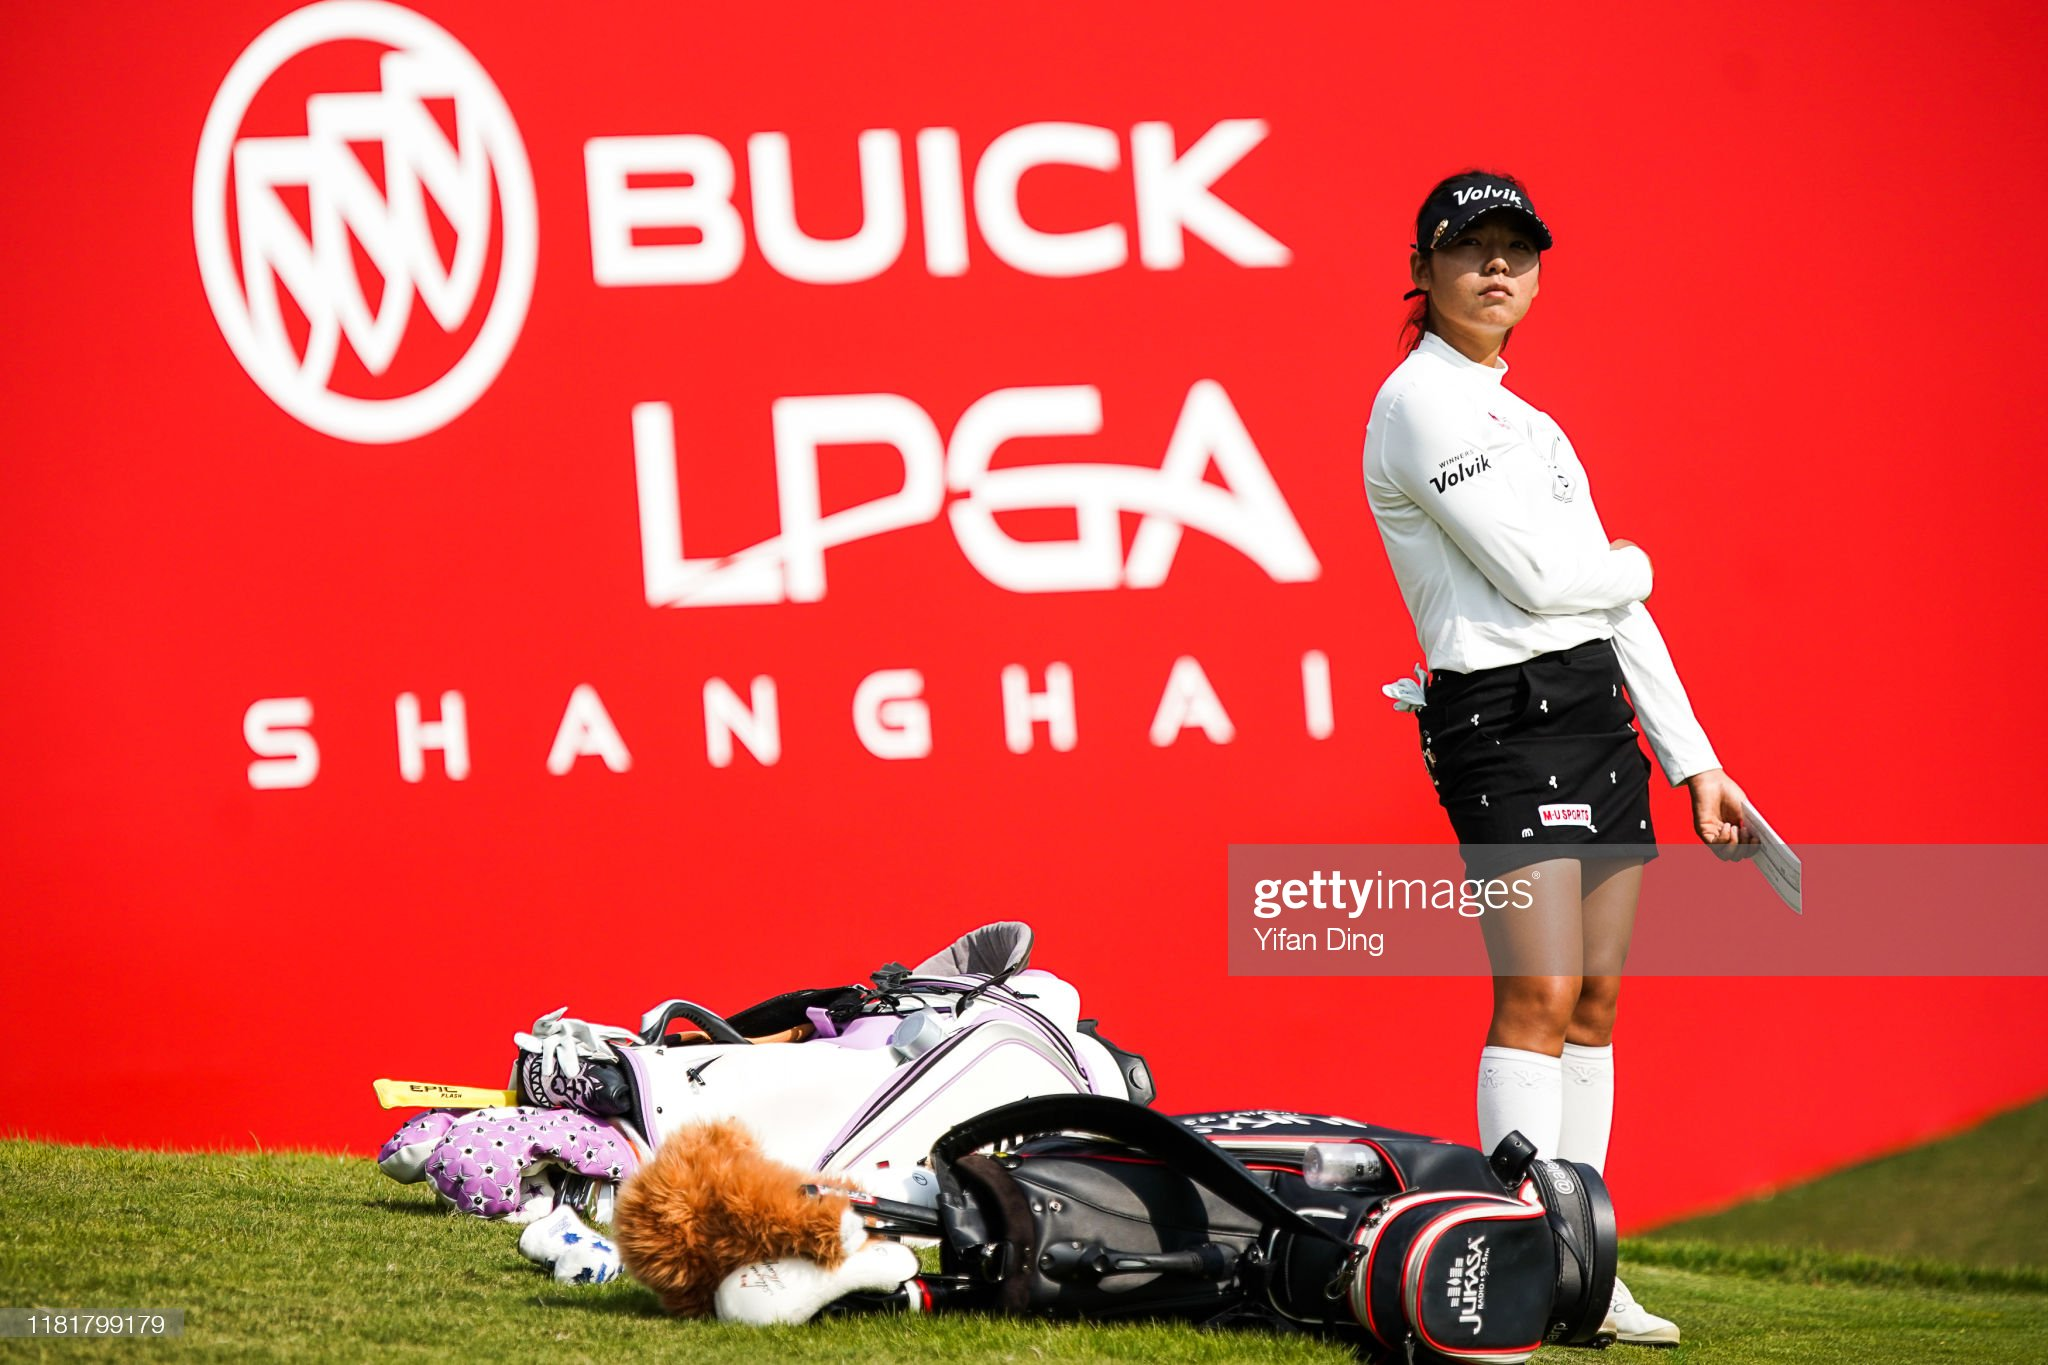 https://media.gettyimages.com/photos/mi-hyang-lee-of-south-korea-looks-during-round-2-of-2019-buick-lpga-picture-id1181799179?s=2048x2048